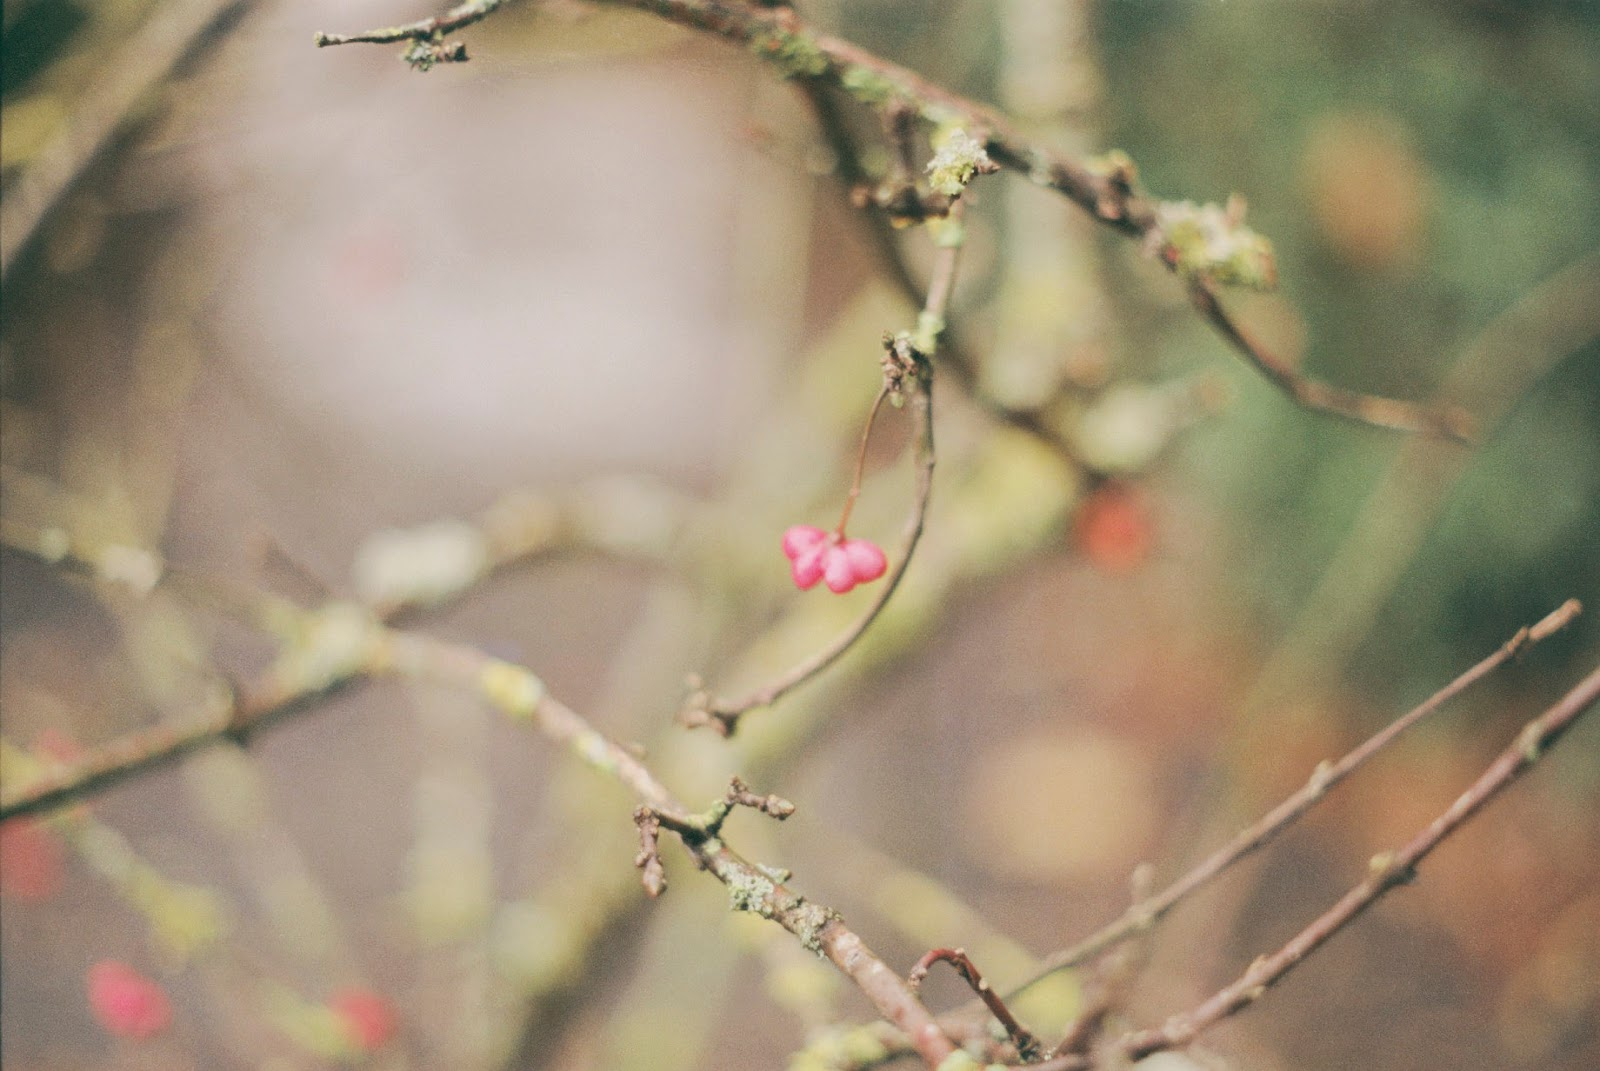 A 35mm photo of a tiny pink flower on the tip of a branch.